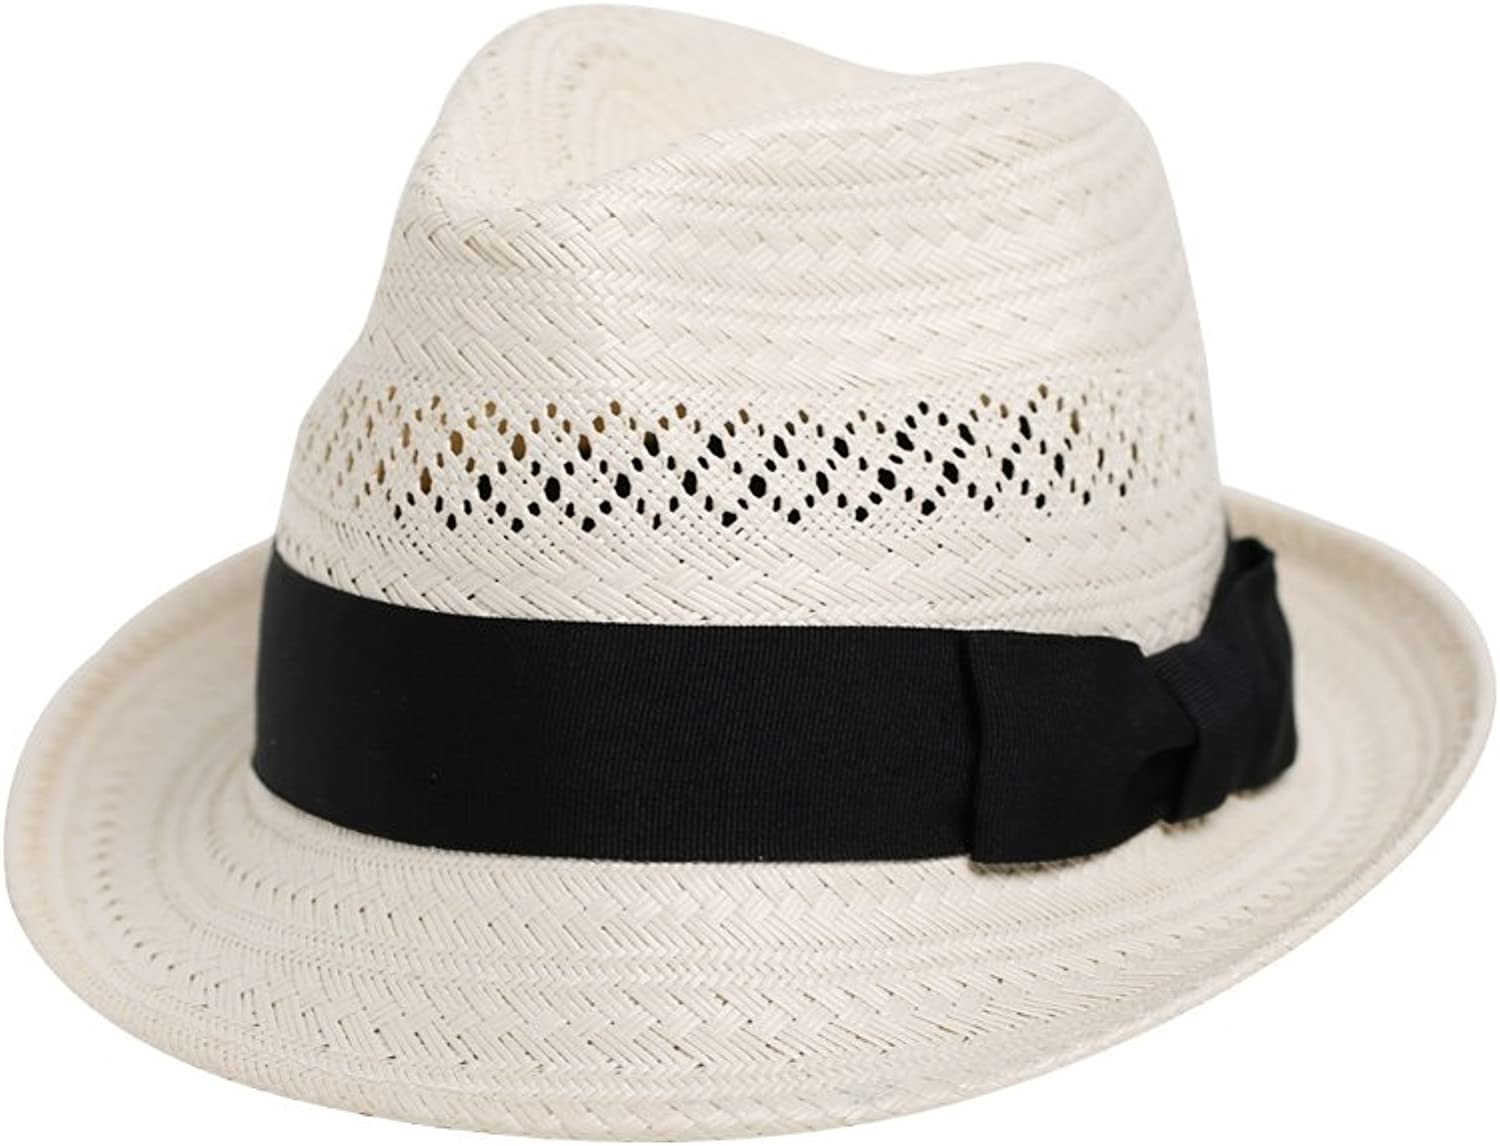 Vaevanhome Lightly Do Not Press The Hair To Cross The Hand-Woven Straw Hat, Adjustable, White